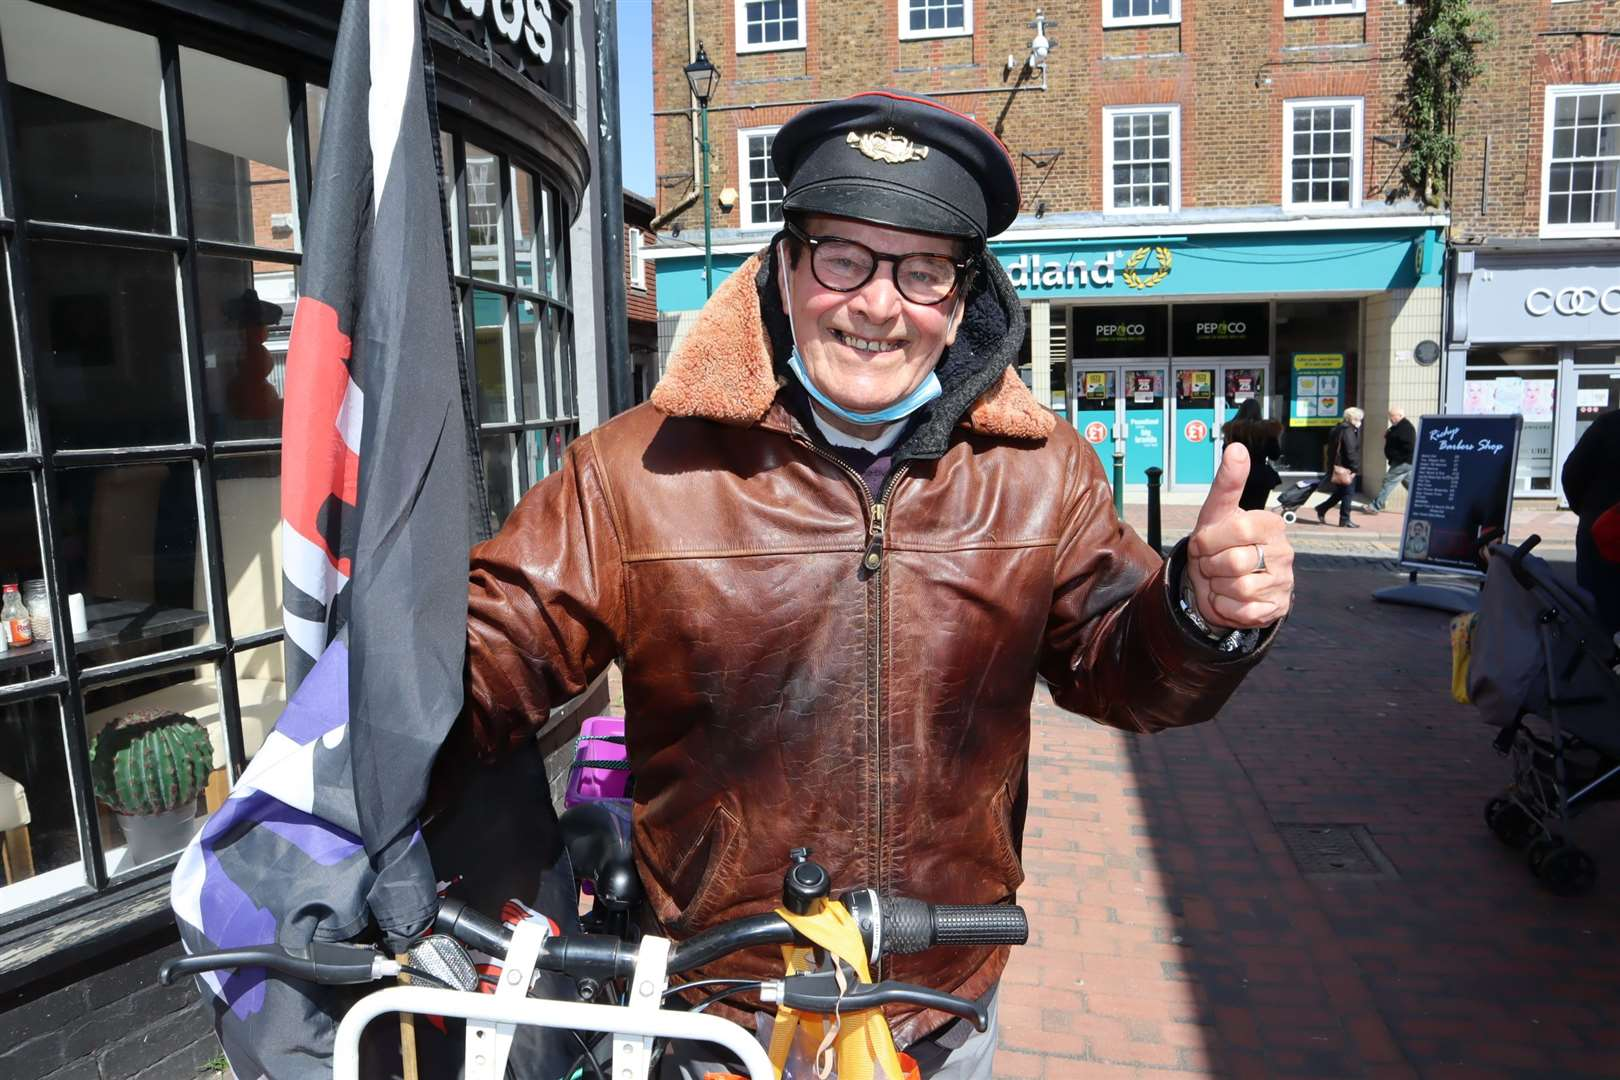 Sittingbourne's 'whistling postman' Dale Howting is smiling again in Roman Square after kind-hearted supporters rallied after he had a day's charity takings stolen from his bike